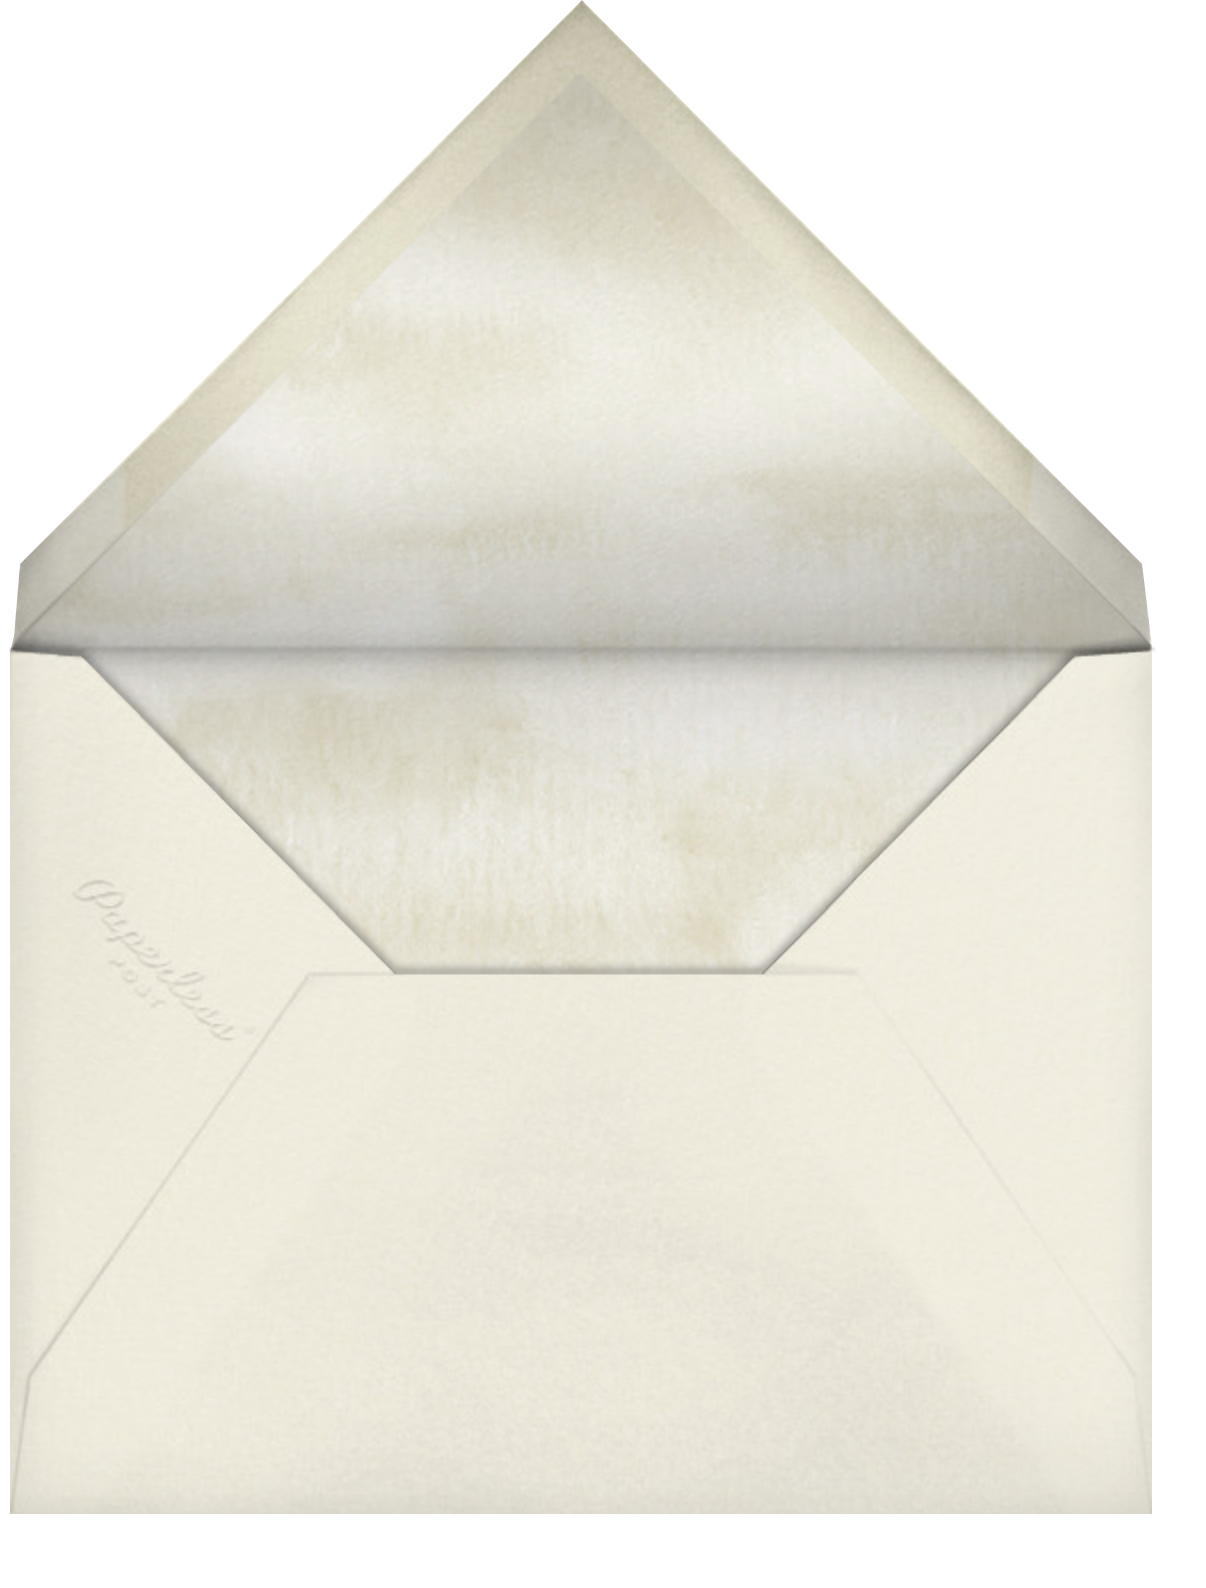 Devonshire - Felix Doolittle - All - envelope back